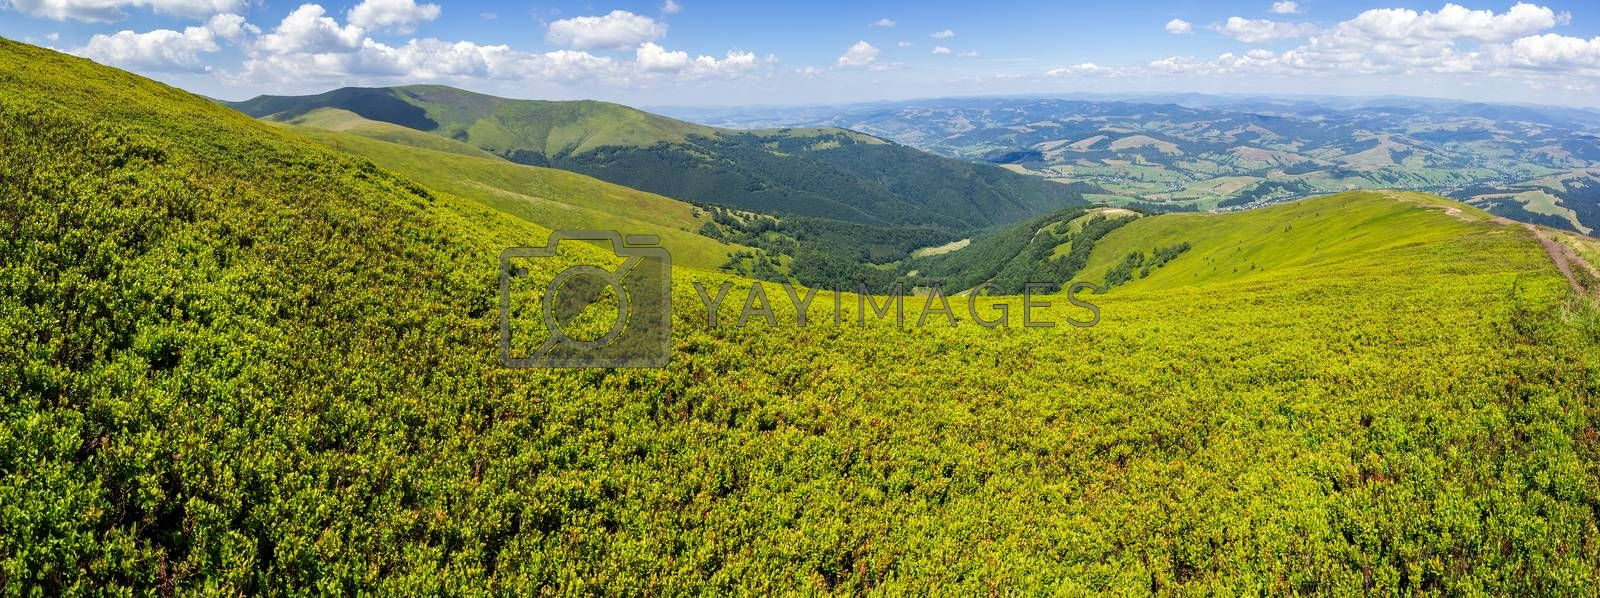 high wild plants at the mountain top by Pellinni